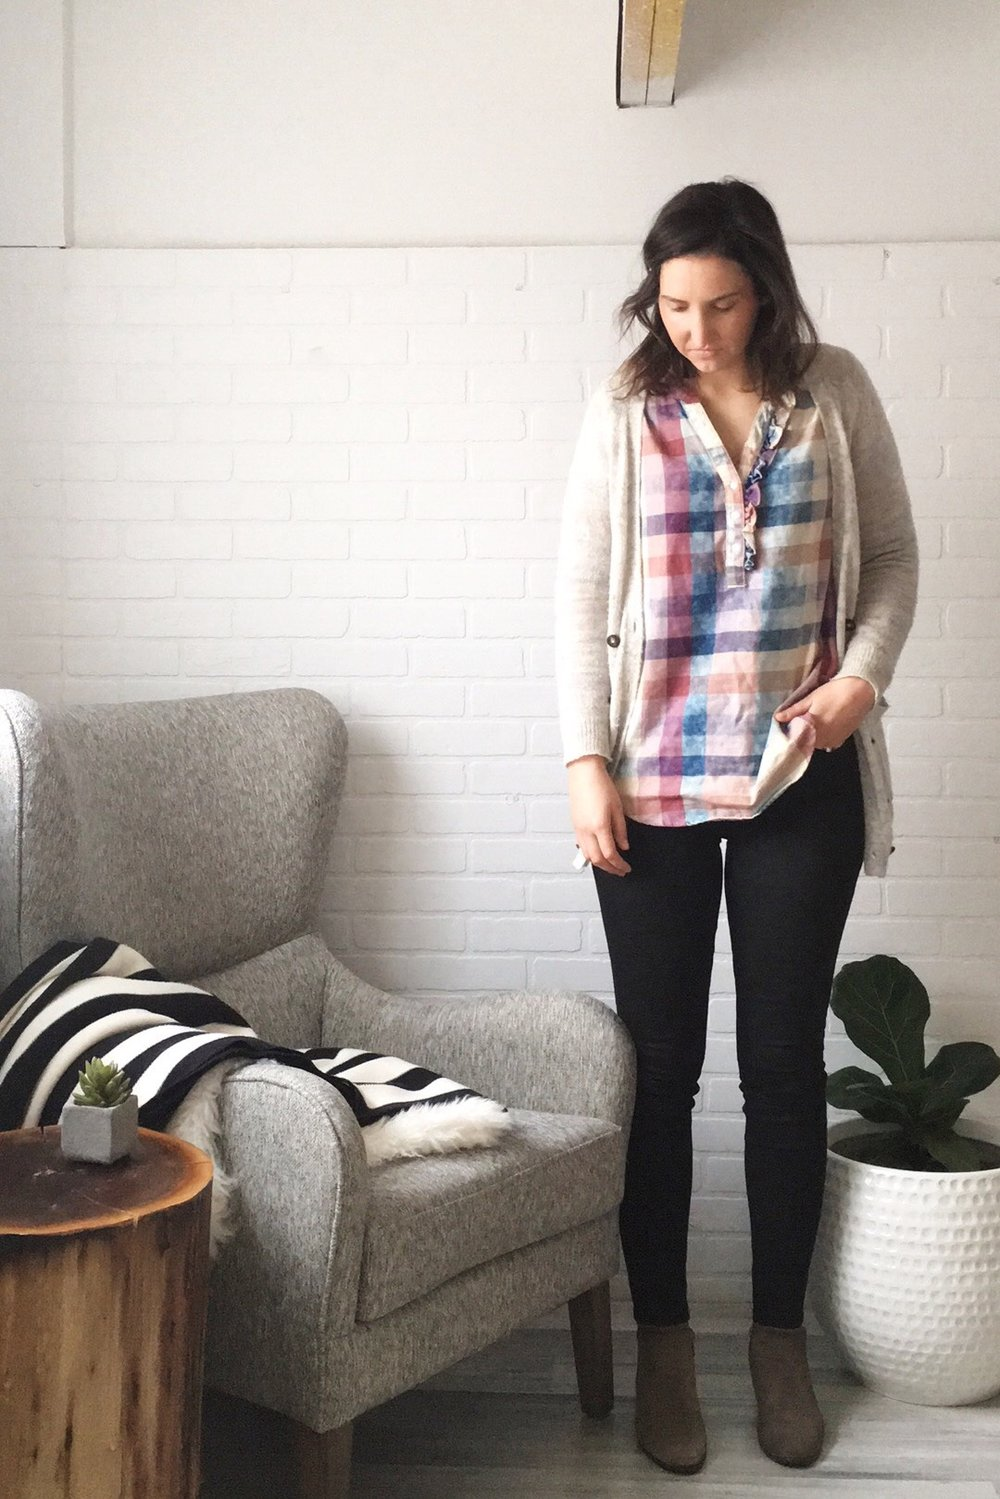 cardigan: Madewell / shirt: Anthropologie / jeans: Level 99 / shoes: DSW